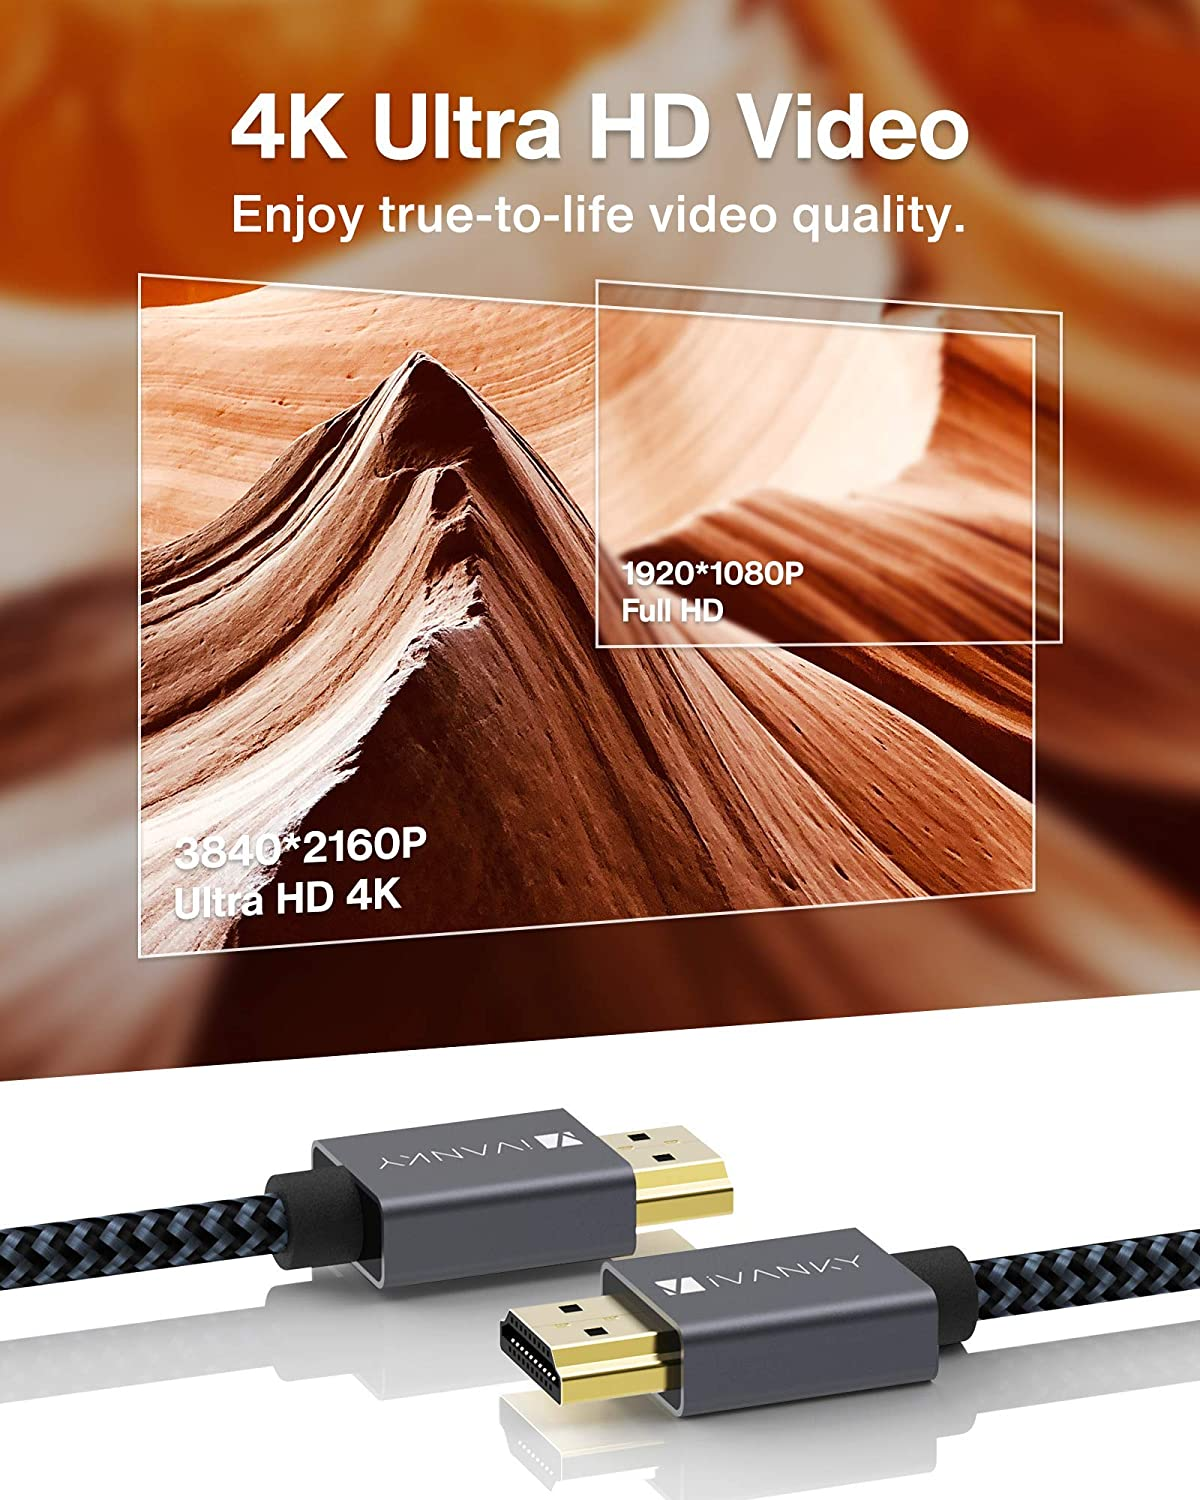 iVANKY Cable HDMI 1,2m Ultra HD 4K, HDMI 2.0 Cable 18Gbps, Compatible con 4K@60HZ, Ultra HD, 3D, Full HD 1080p, HDR, ARC, Alta Velocidad con Ethernet, ...